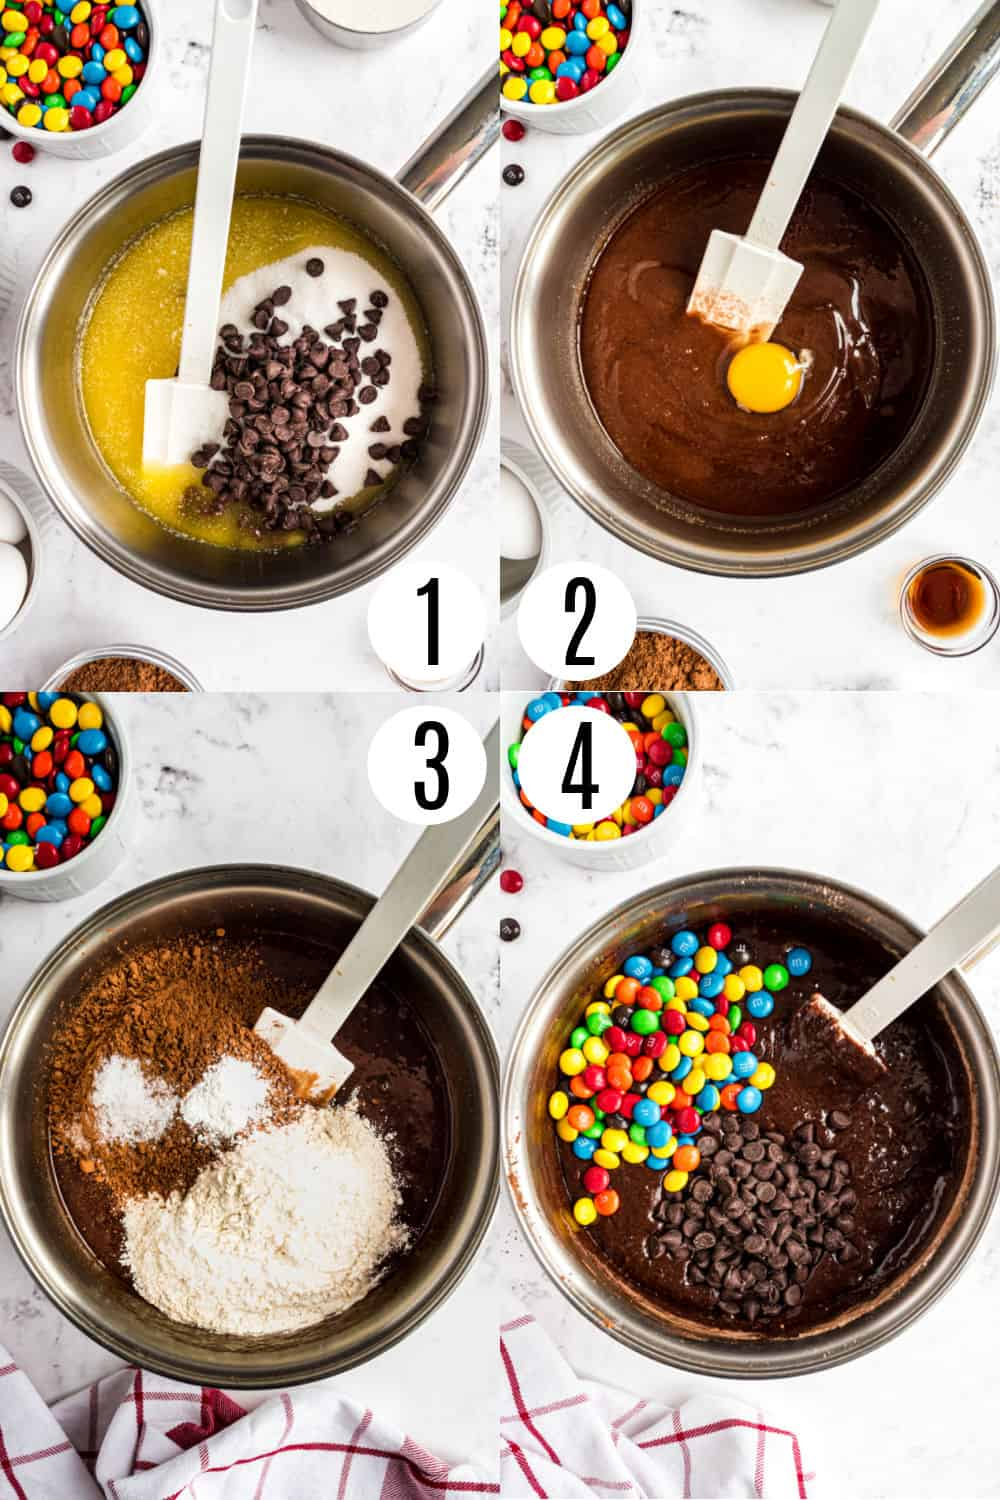 Step by step photos showing how to make chocolate M&M brownies.